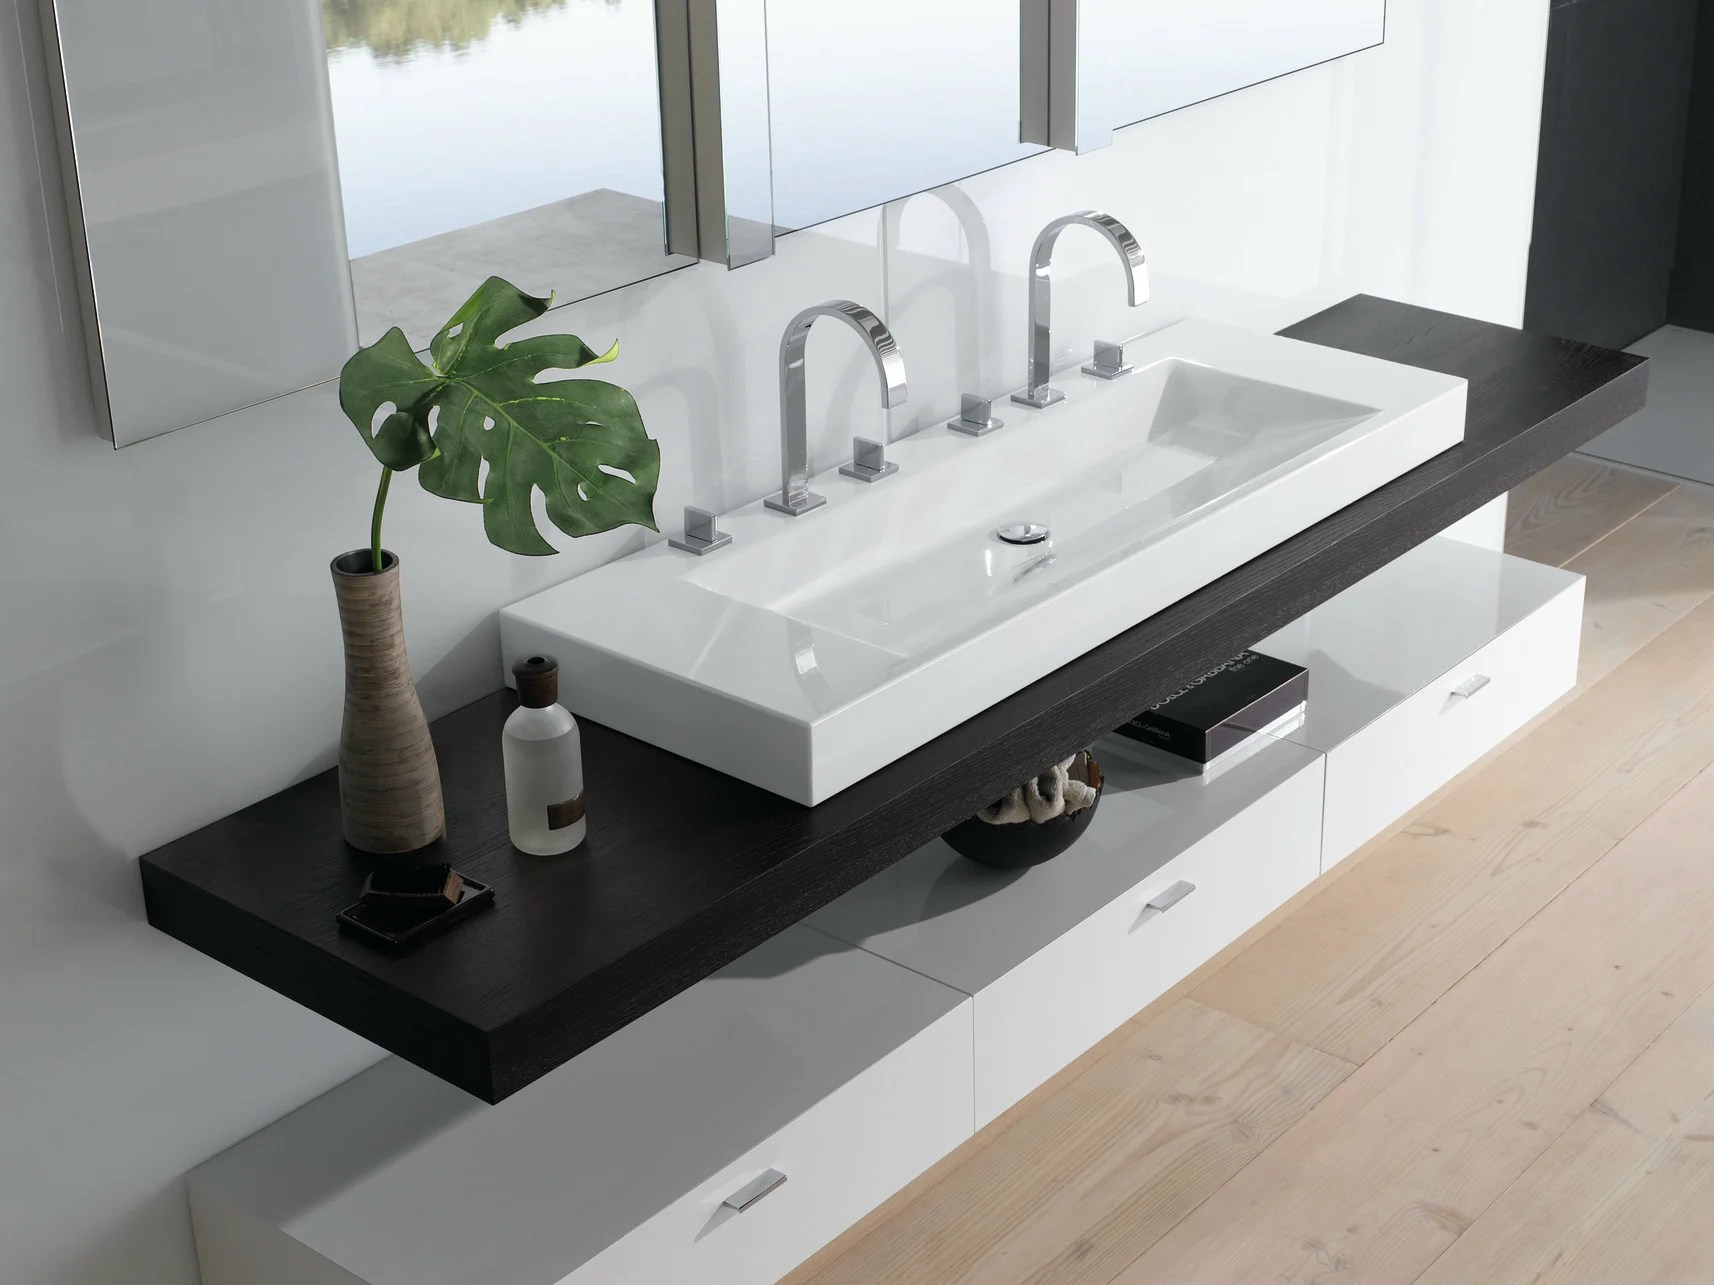 Lavabo Double Vasque Betteaqua Lavabo Double By Bette Design Schmiddem Design